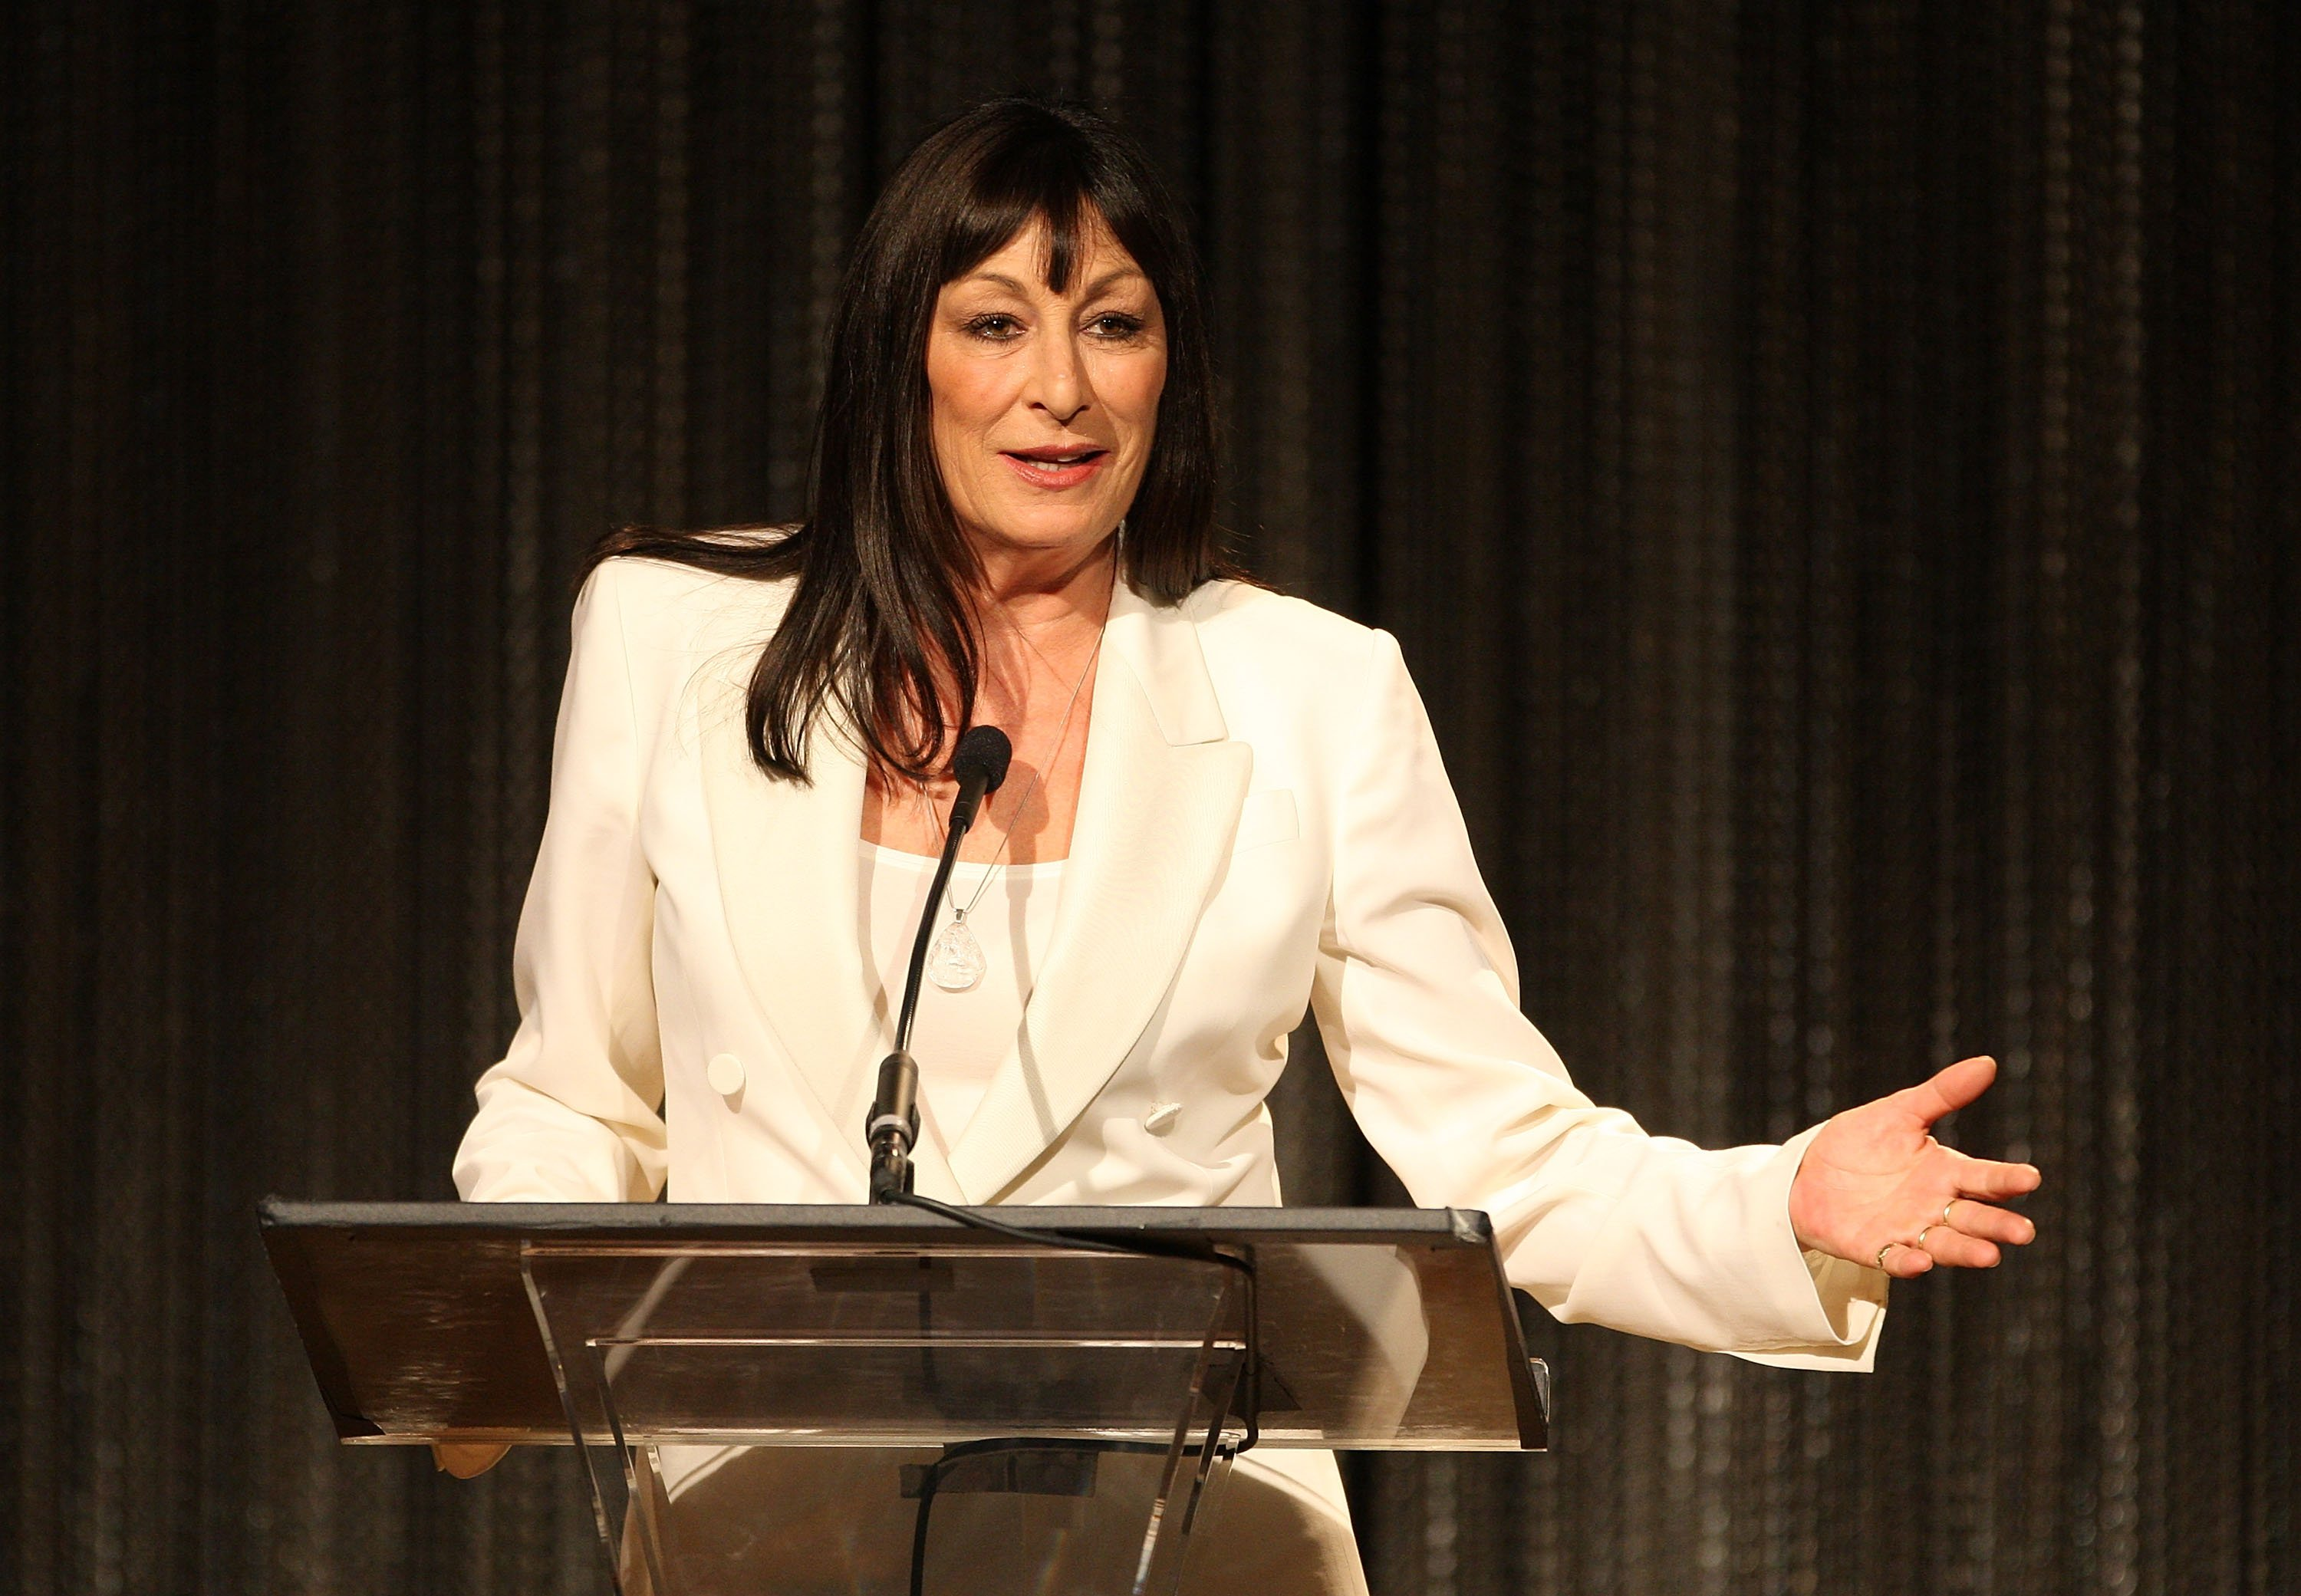 Getty Images l Anjelica Huston gives a speech at the Costume Designers Guild Awards